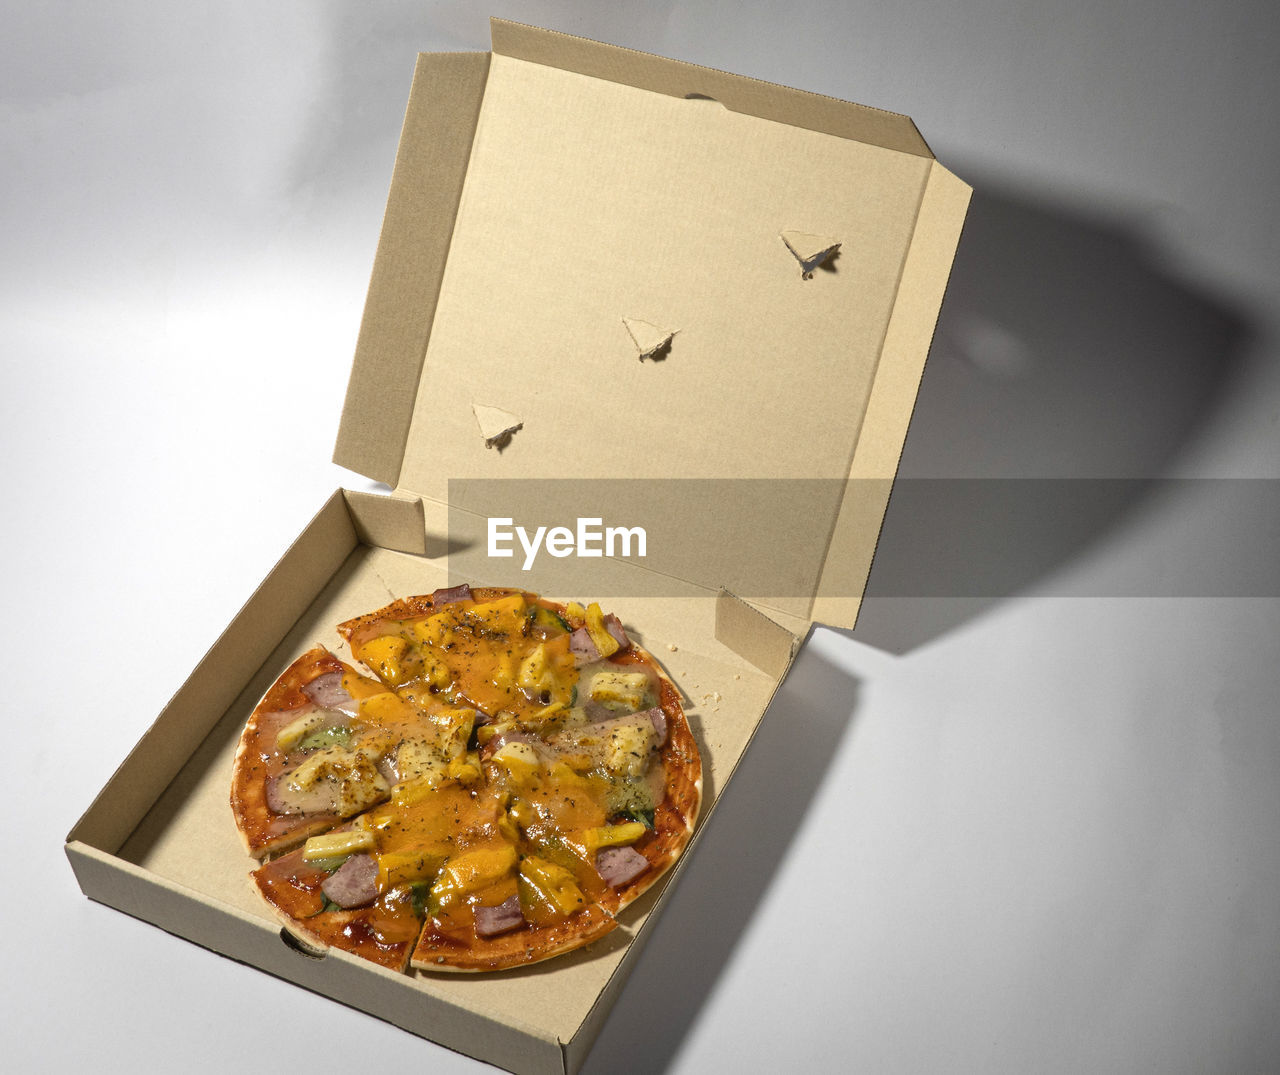 HIGH ANGLE VIEW OF PIZZA IN BOX ON WHITE BACKGROUND